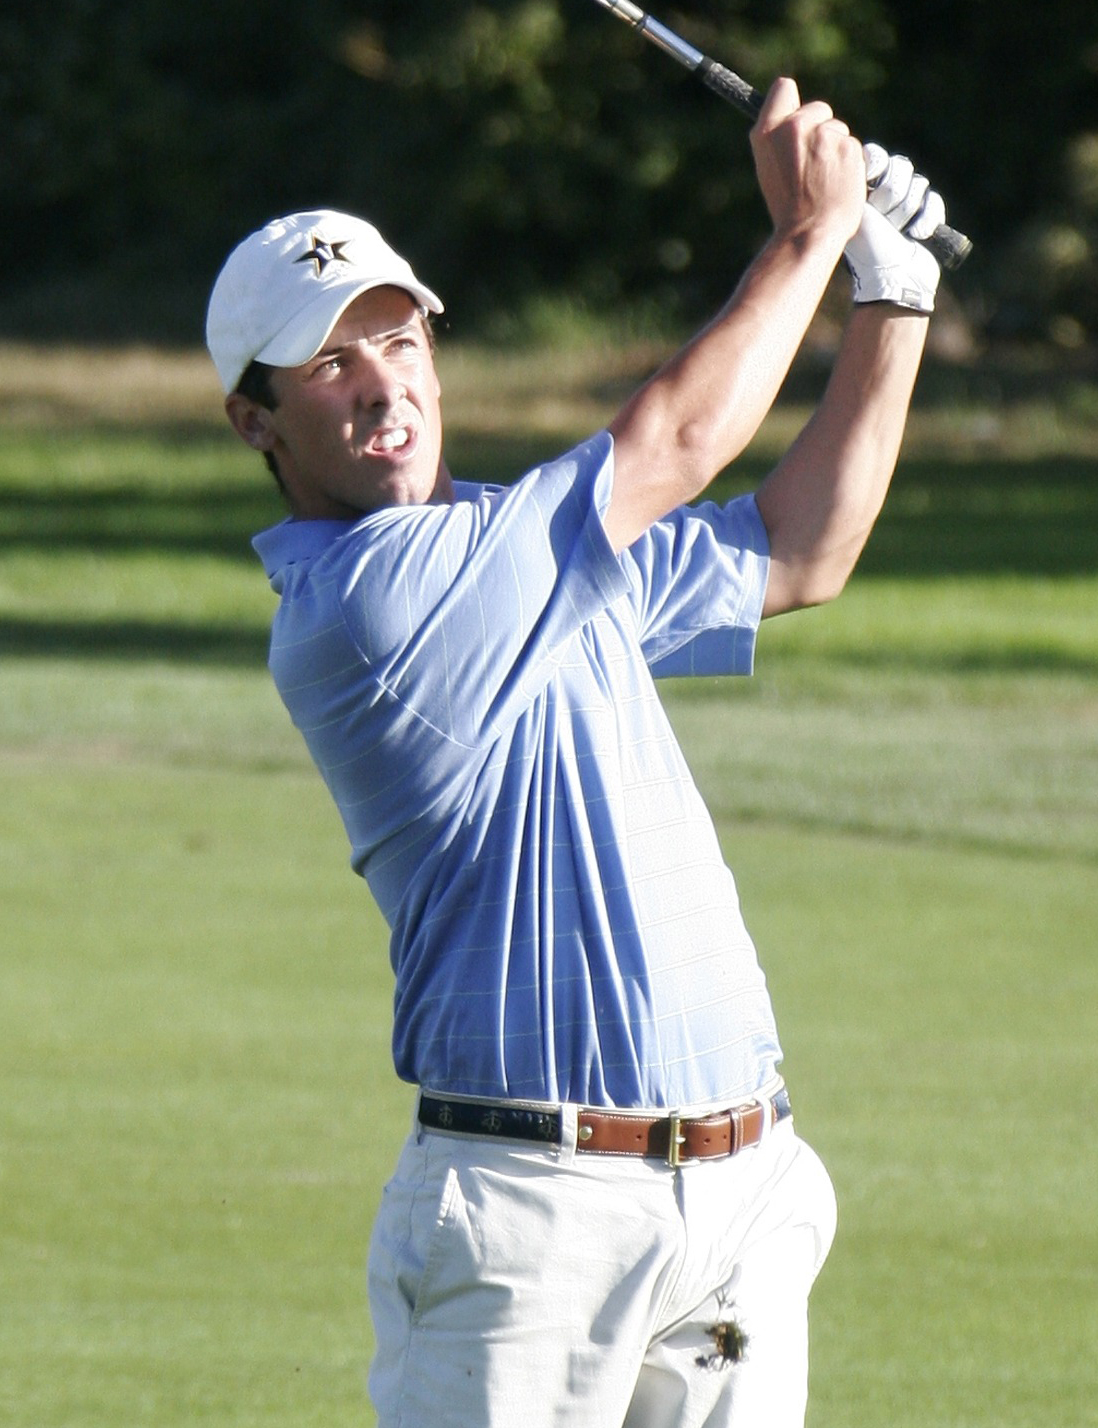 Jon Curran during the first round of the 2007 U.S. Amateur at the Olympic Club.